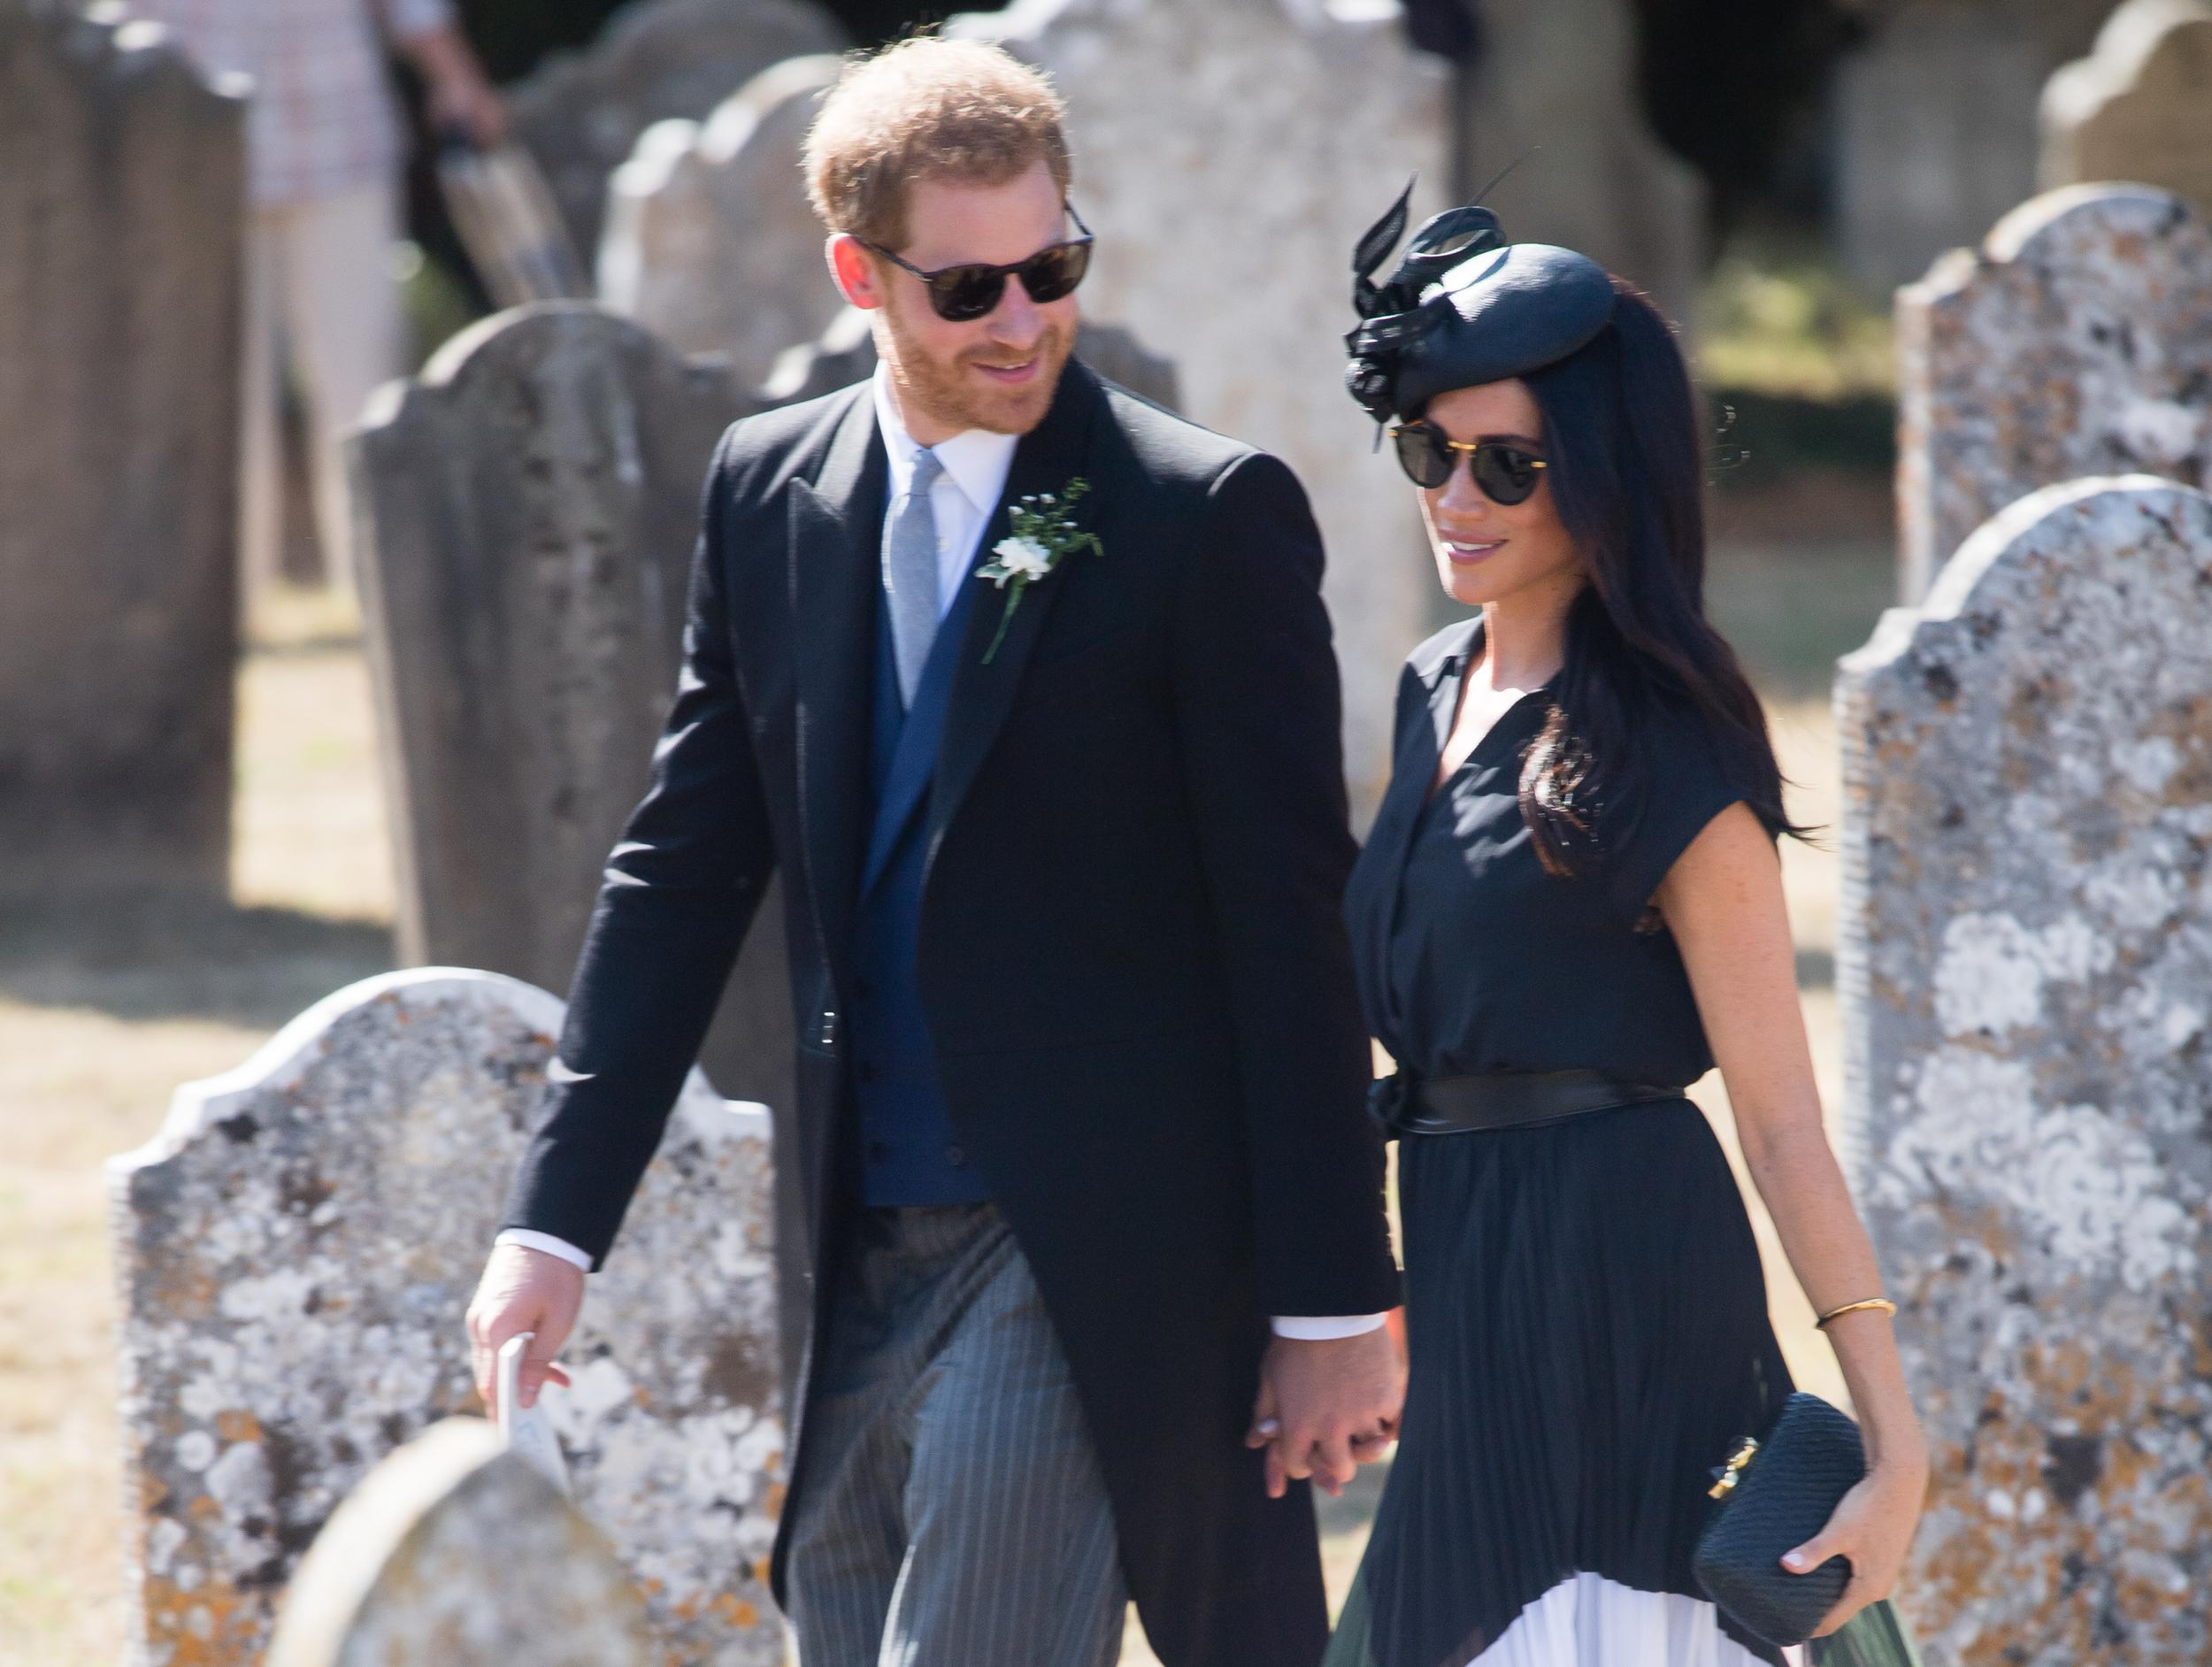 FRENSHAM, UNITED KINGDOM - AUGUST 04:  Prince Harry, Duke of Sussex and Meghan, Duchess of Sussex attends the wedding of Charlie Van Straubenzee on August 4, 2018 in Frensham, United Kingdom. Prince Harry attended the same prep school as Charlie van Straubenzee and have been good friends ever since.  (Photo by Samir Hussein/Samir Hussein/WireImage)